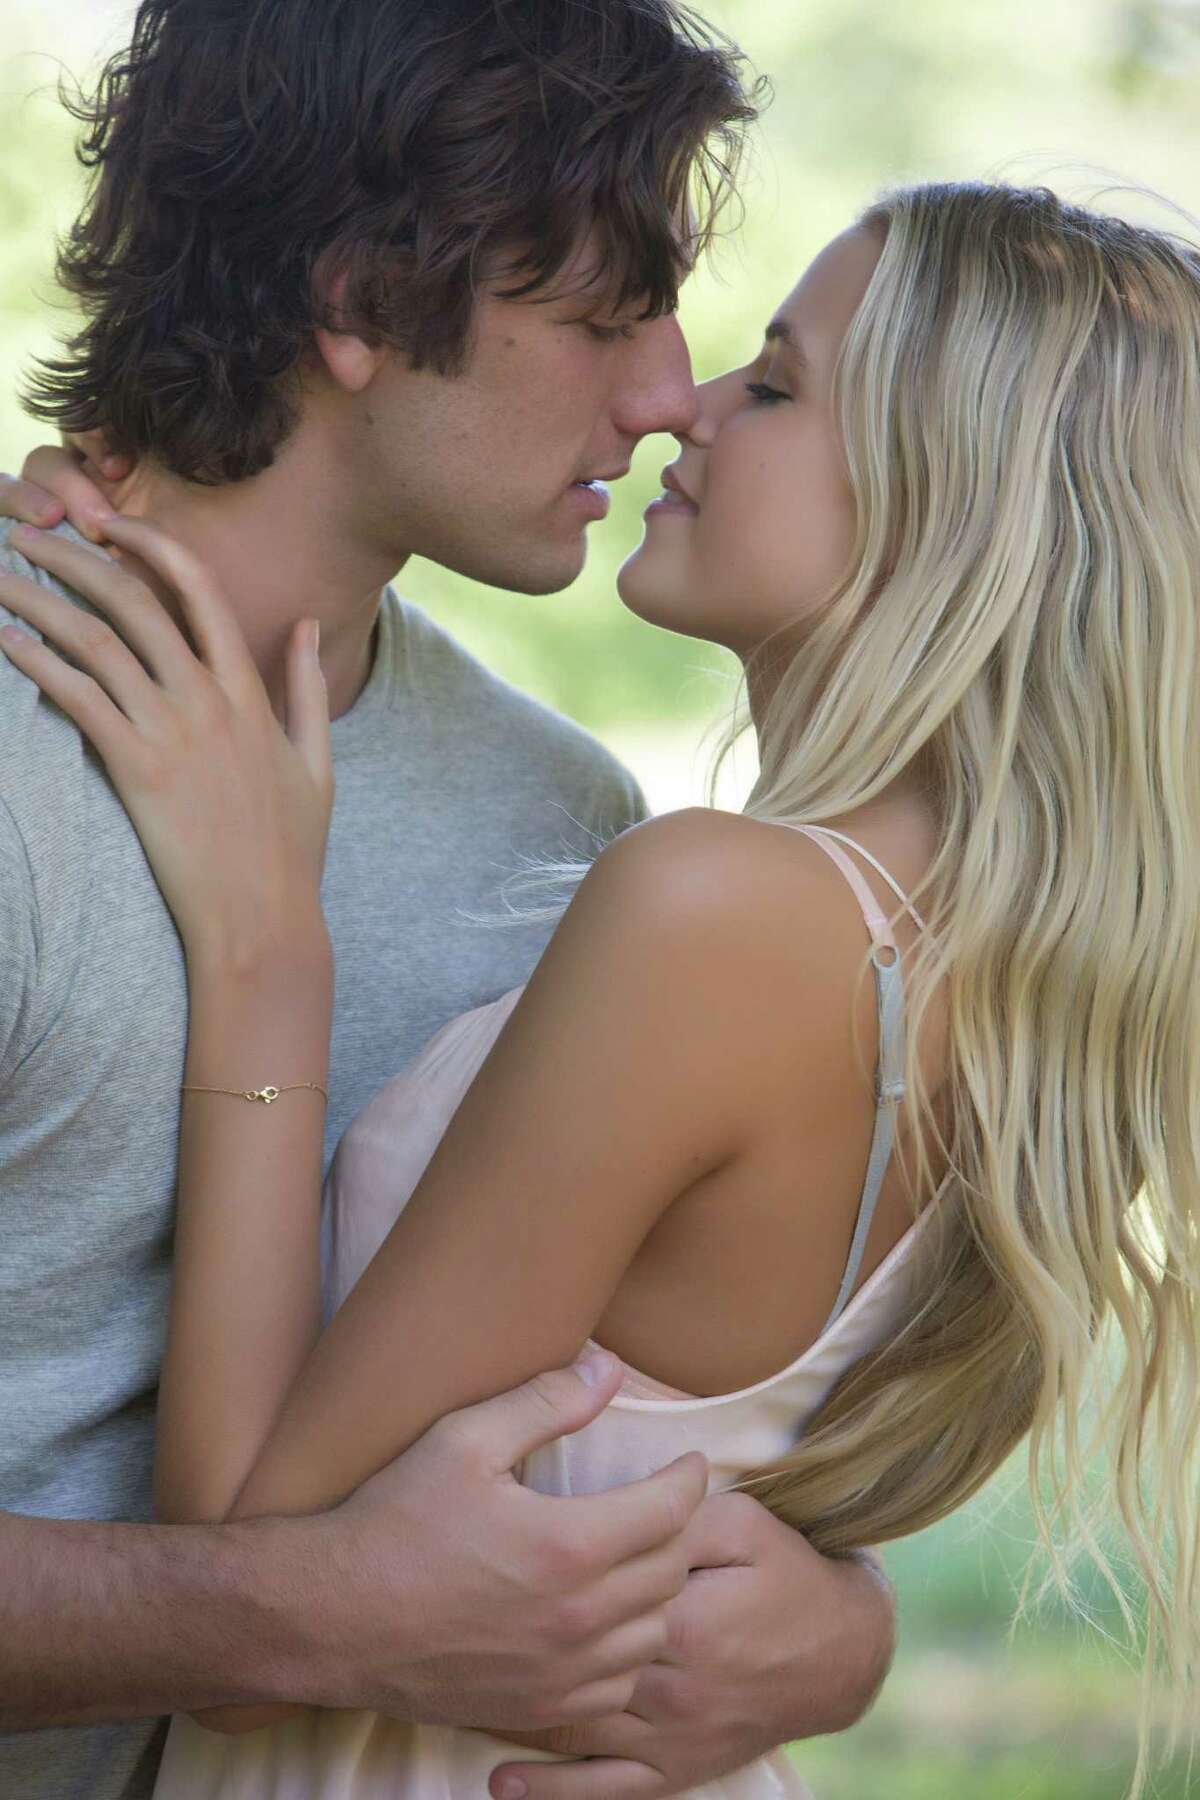 """ALEX PETTYFER as David and GABRIELLA WILDE as Jade in """"Endless Love"""", the story of a privileged girl and a charismatic boy whose instant desire sparks a love affair made only more reckless by parents trying to keep them apart."""